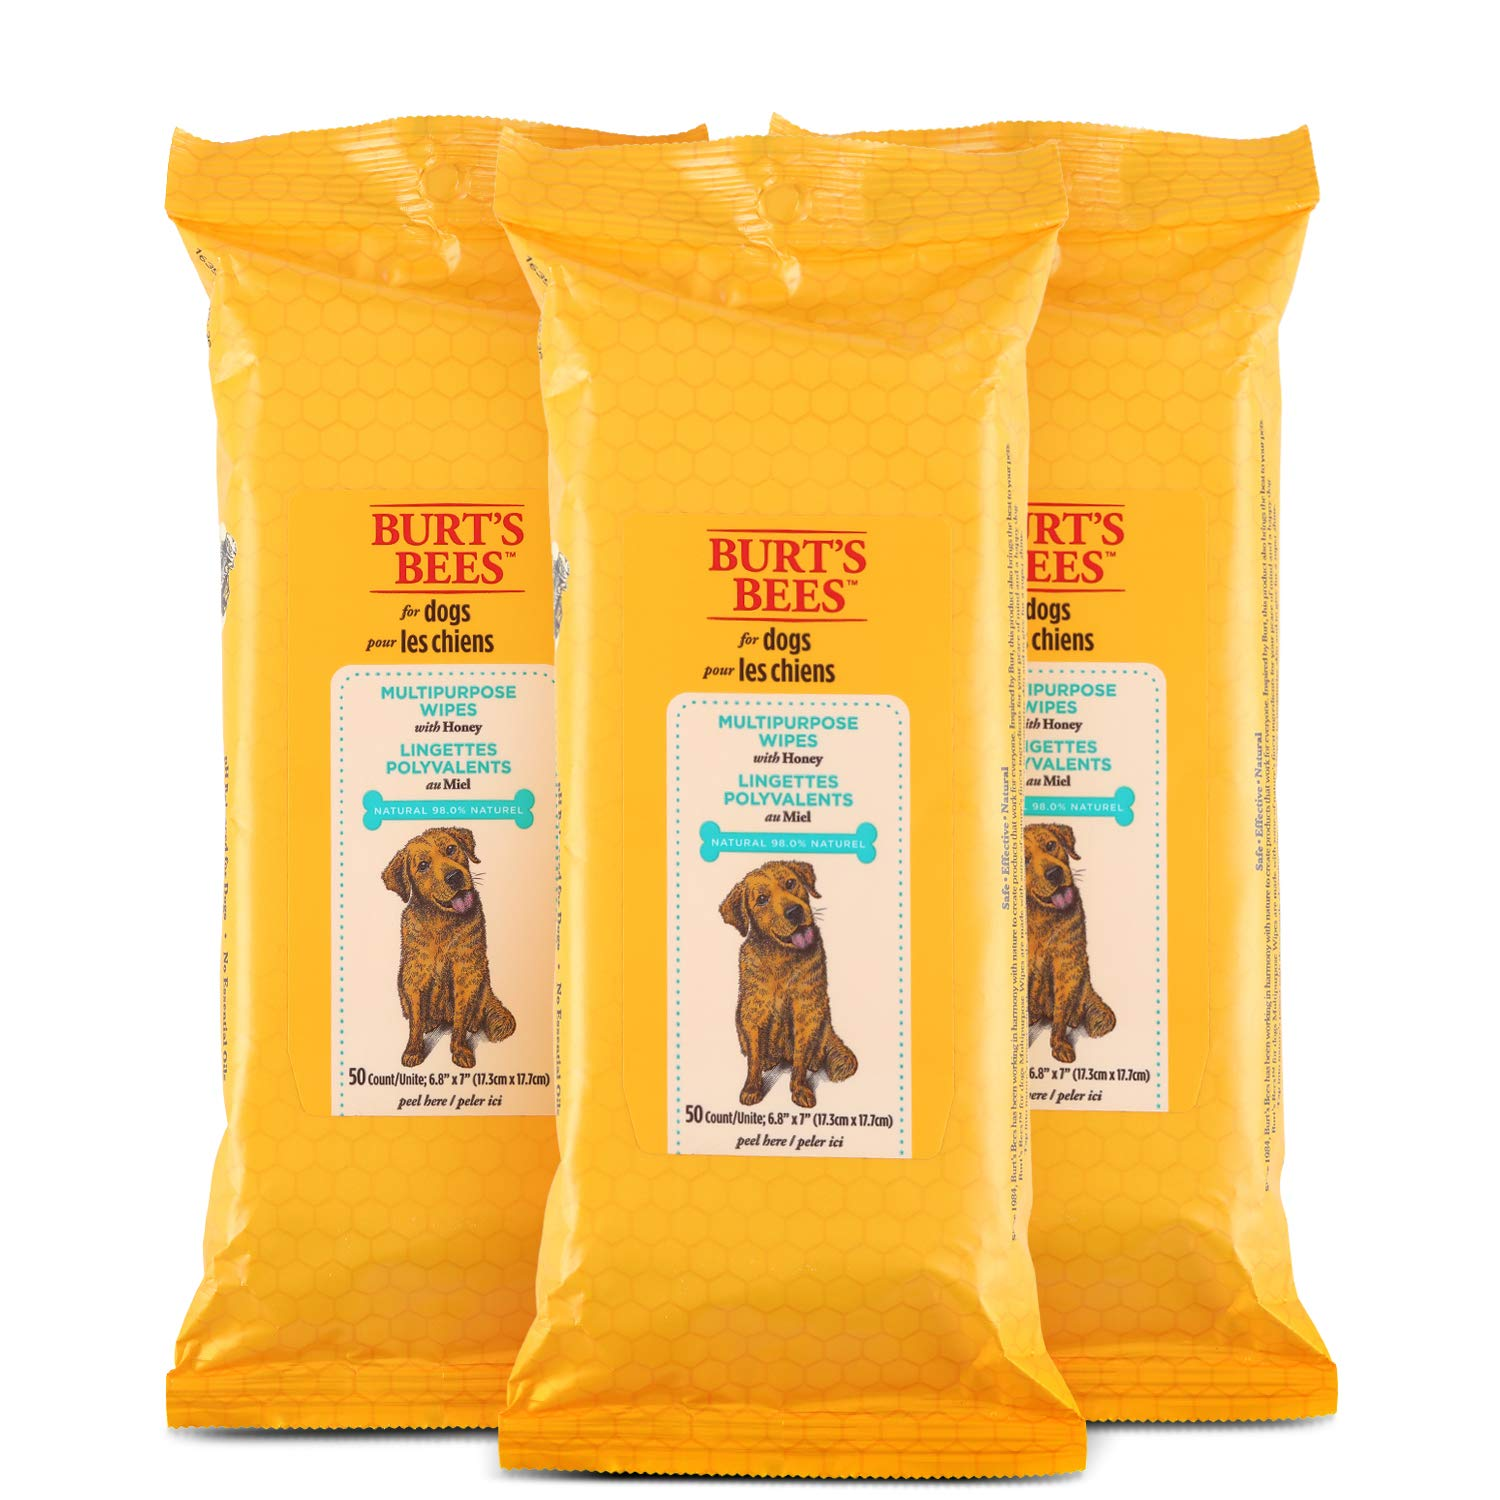 Burt's Bees For Dogs Multipurpose Grooming Wipes | Puppy and Dog Wipes For Cleaning, 50 Count - 3 Pack by Burt's Bees for Pets